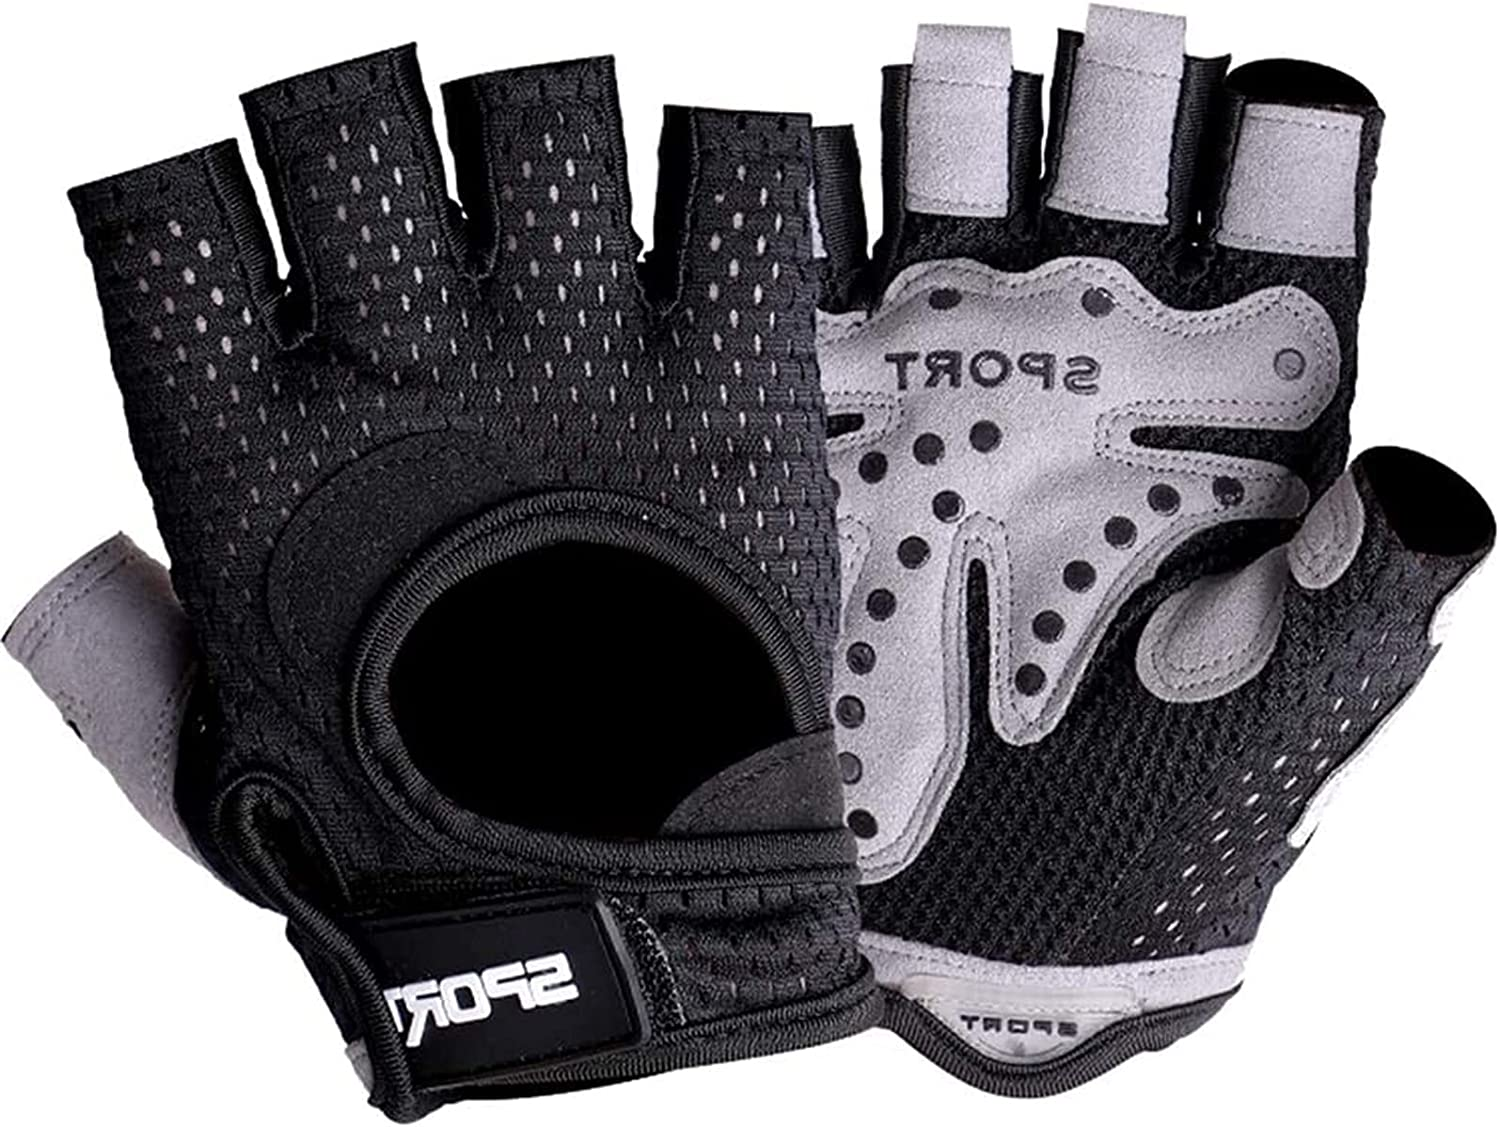 Sport gloves Directly managed store Sports Same day shipping Gloves Training Fitness Cross Weightlifting